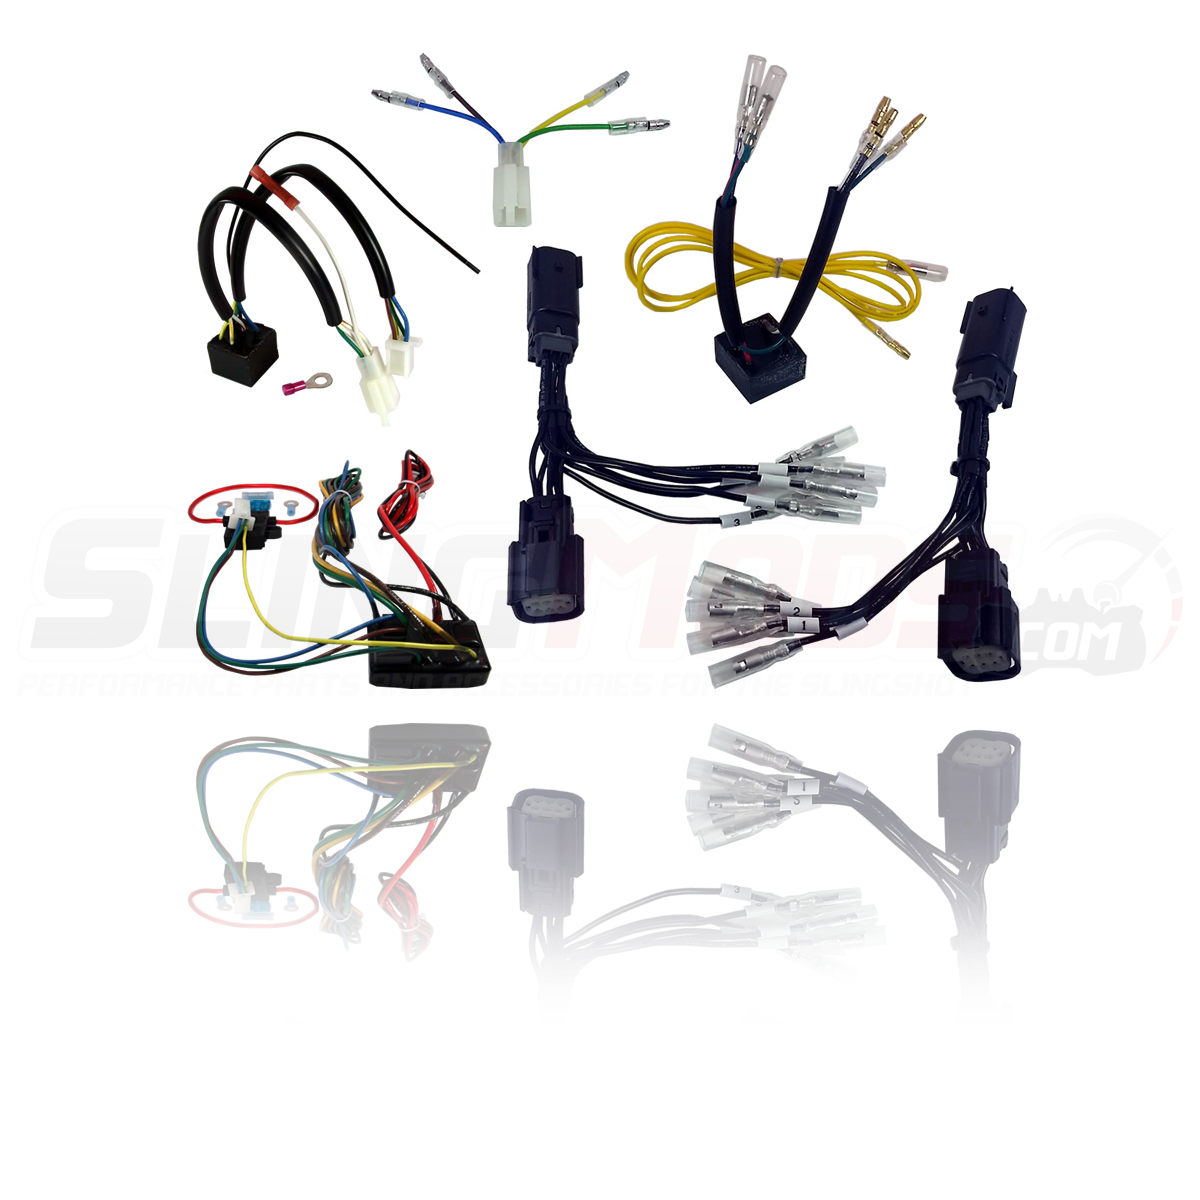 Electrical Connection Trailer Hitch Wiring Harness for the Polaris on